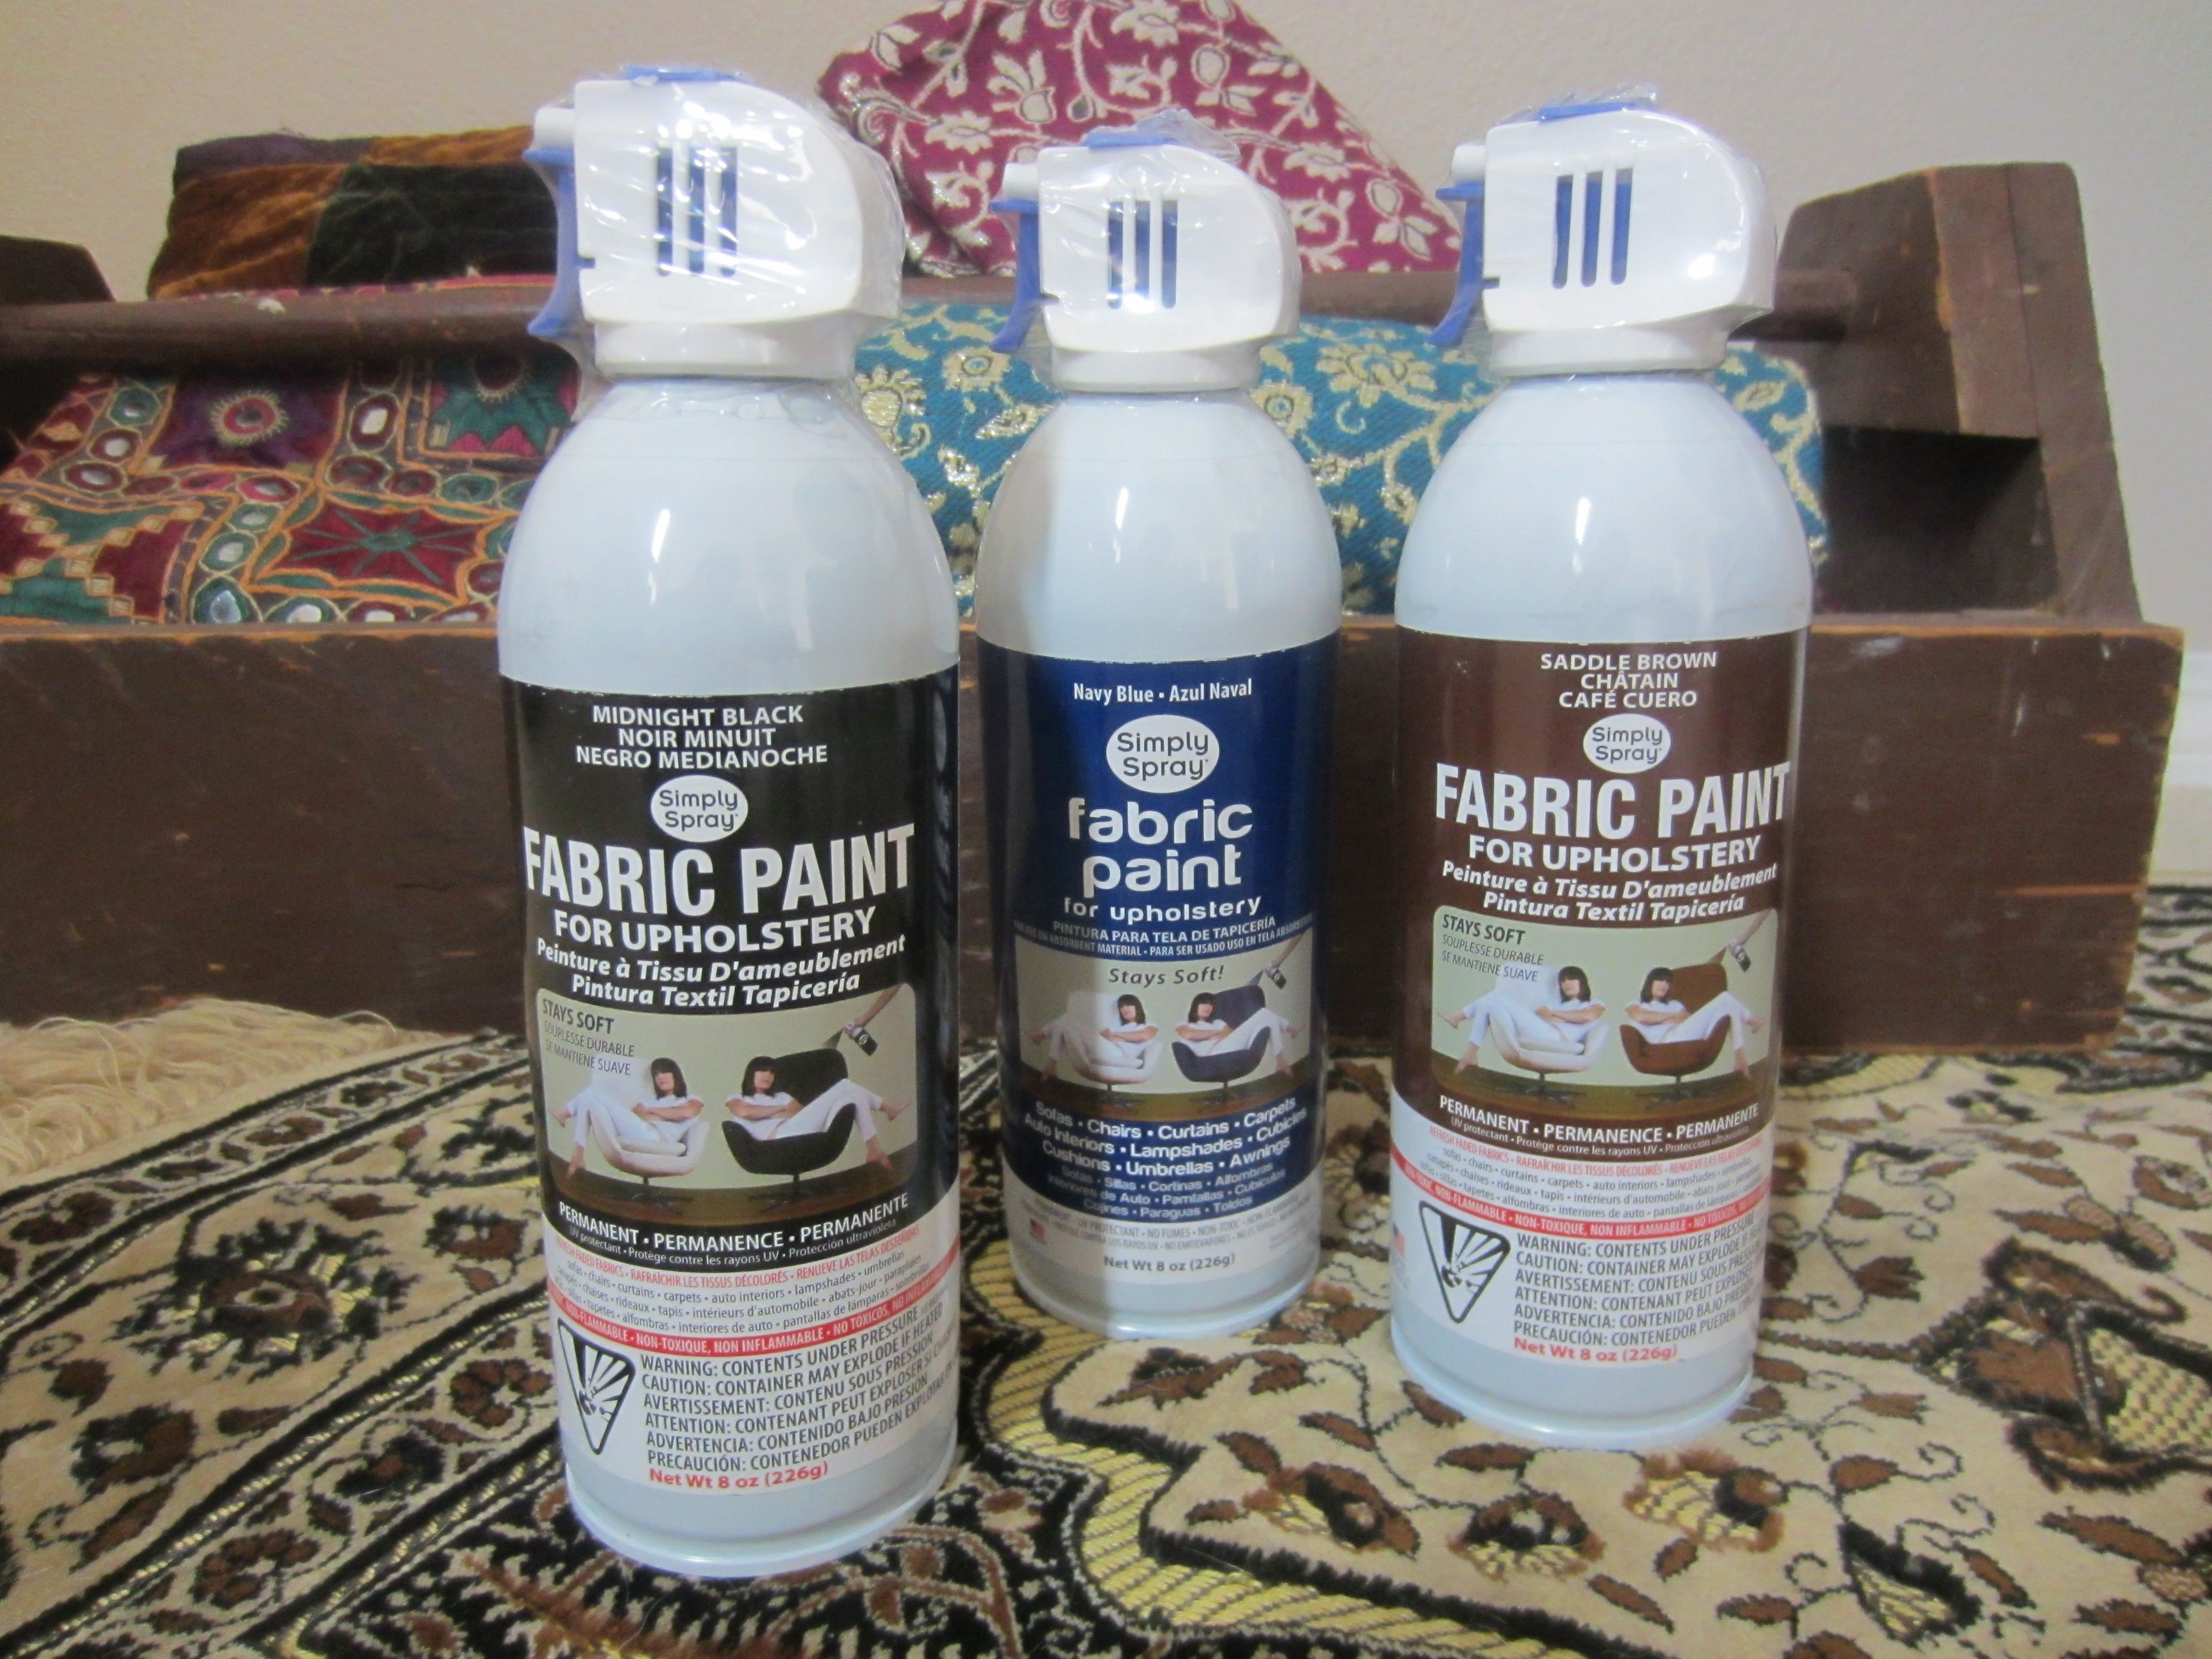 Simply Spray Diy Inspired Fabric Spray Paint For Upholstery Get A Cheapy Cheap Chair And Just Fabric Spray Paint Fabric Paint Diy Simply Spray